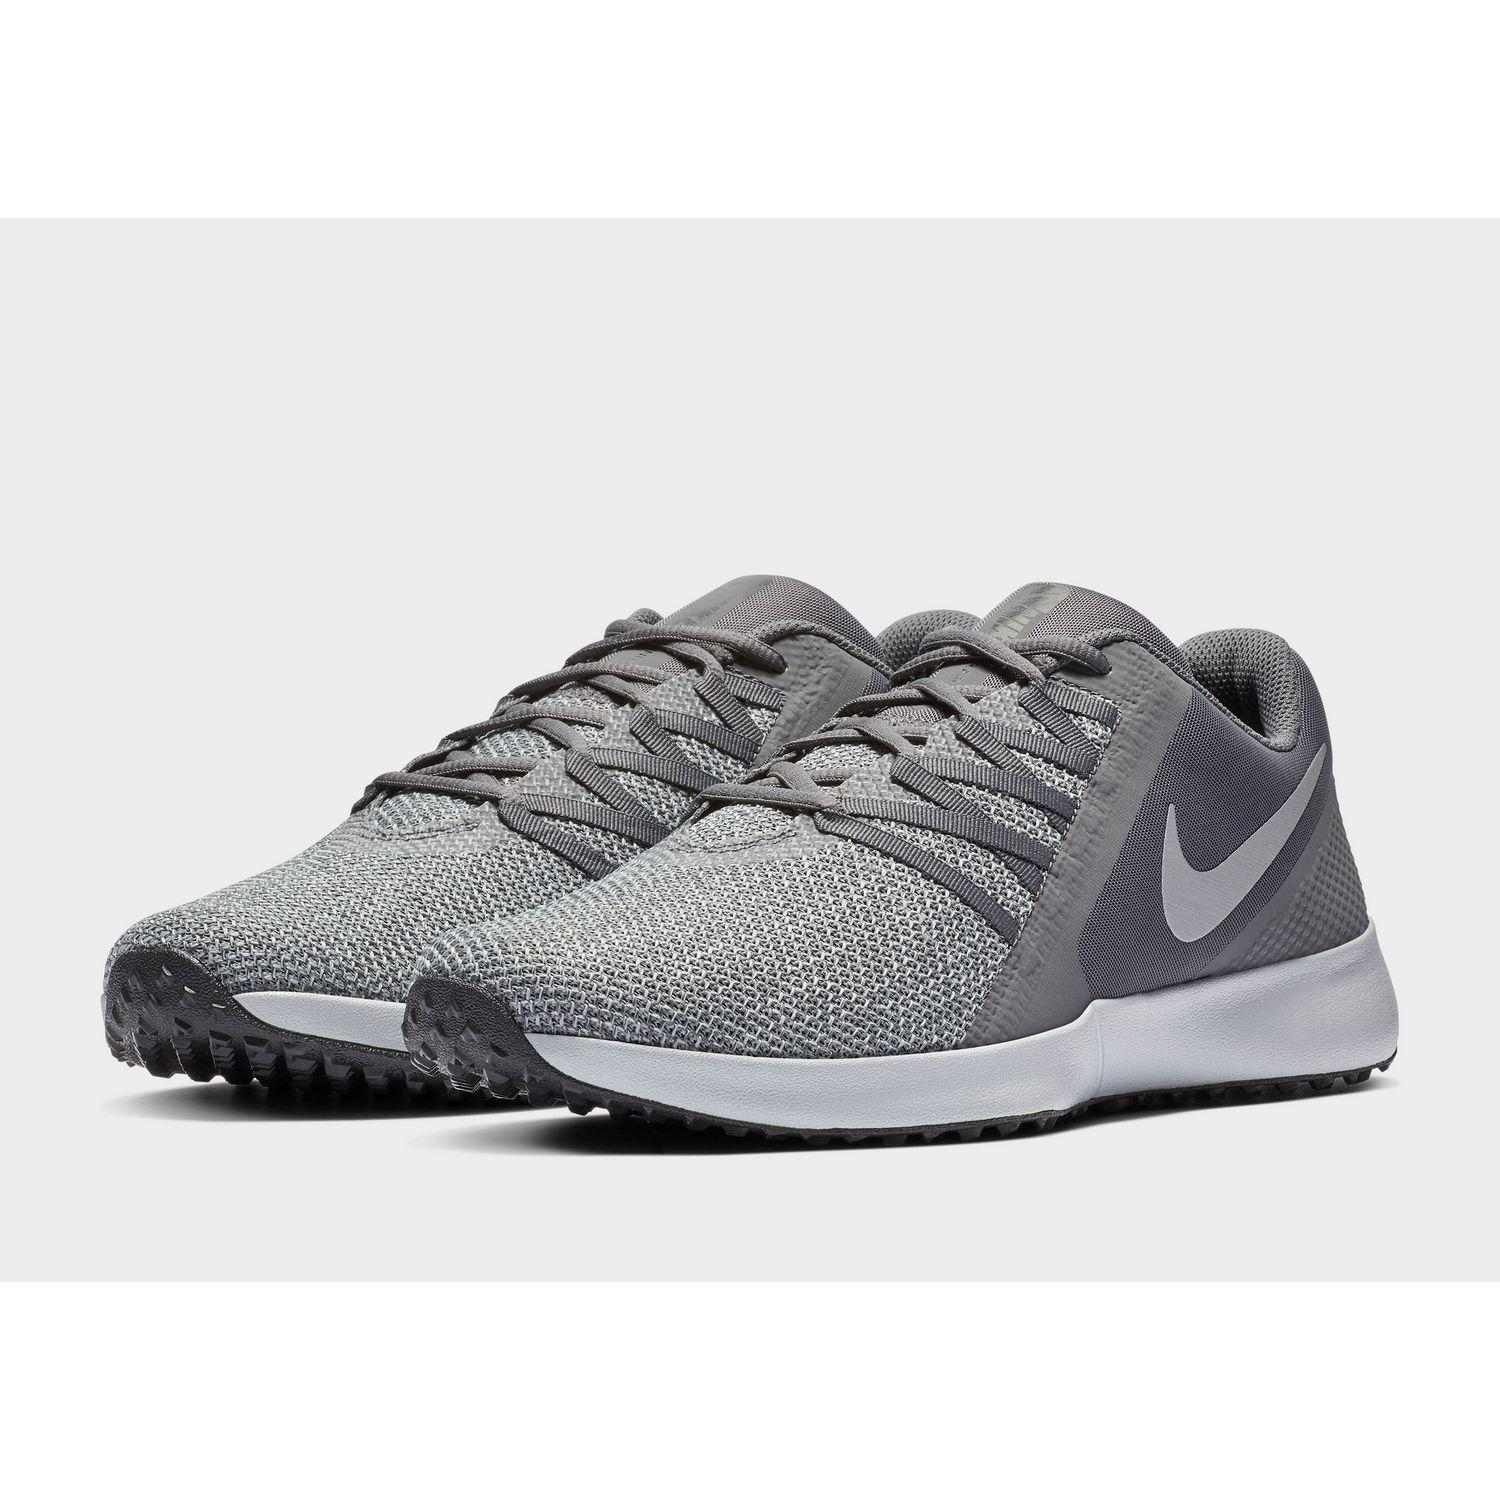 3f738363d3a Nike - Gray Varsity Compete Trainer Men s Gym sport Training Shoe for Men -  Lyst. View fullscreen